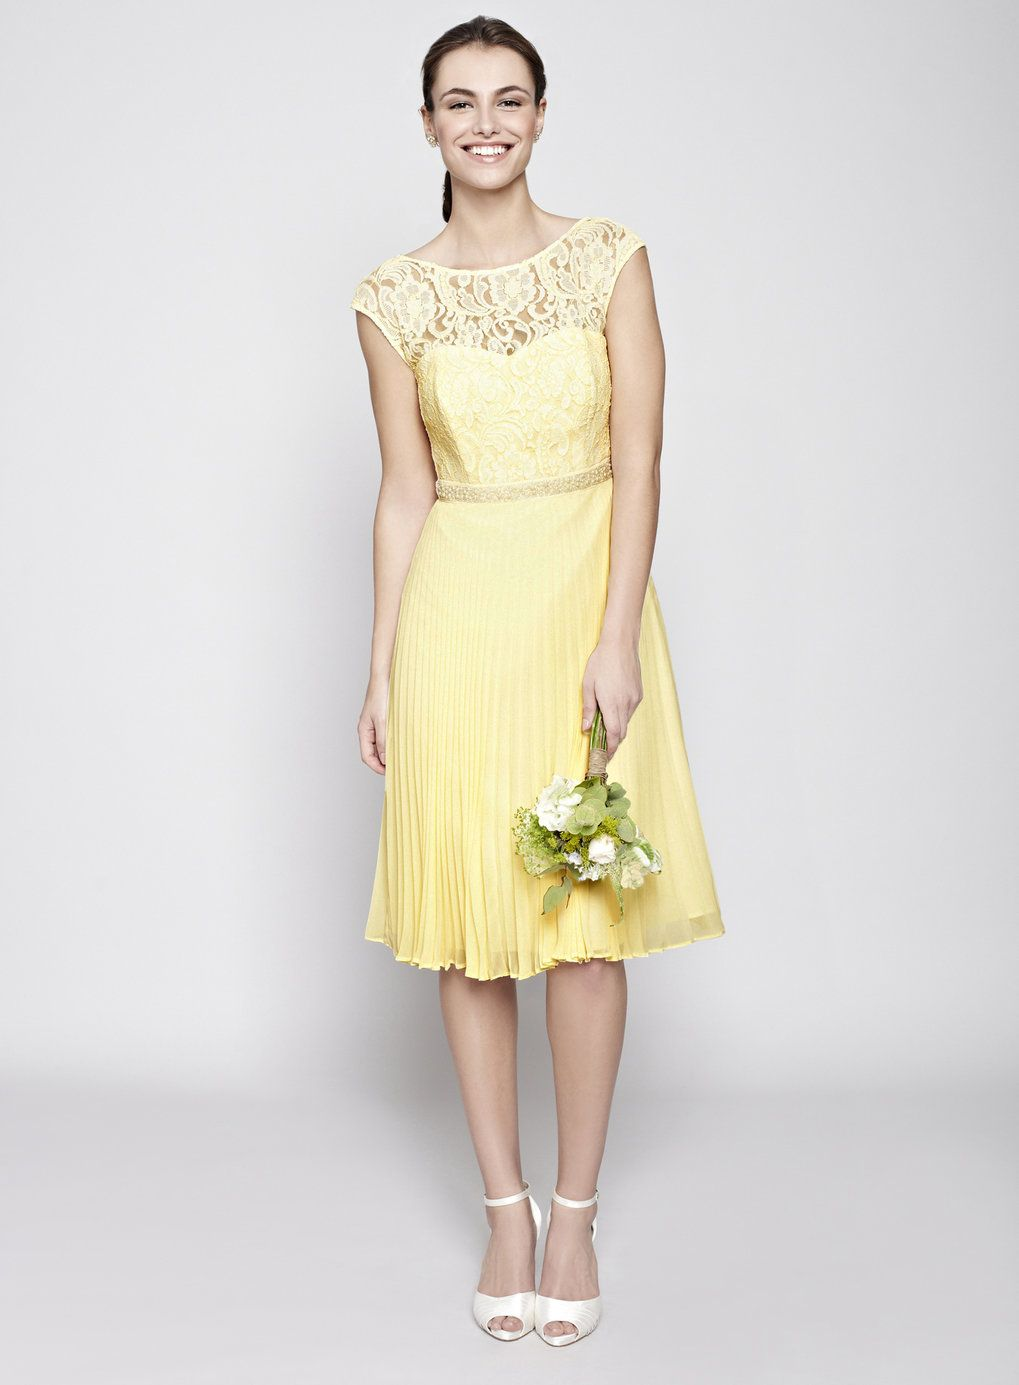 Lemon wedding dress - Google Search | Bridesmaid Dresses ...